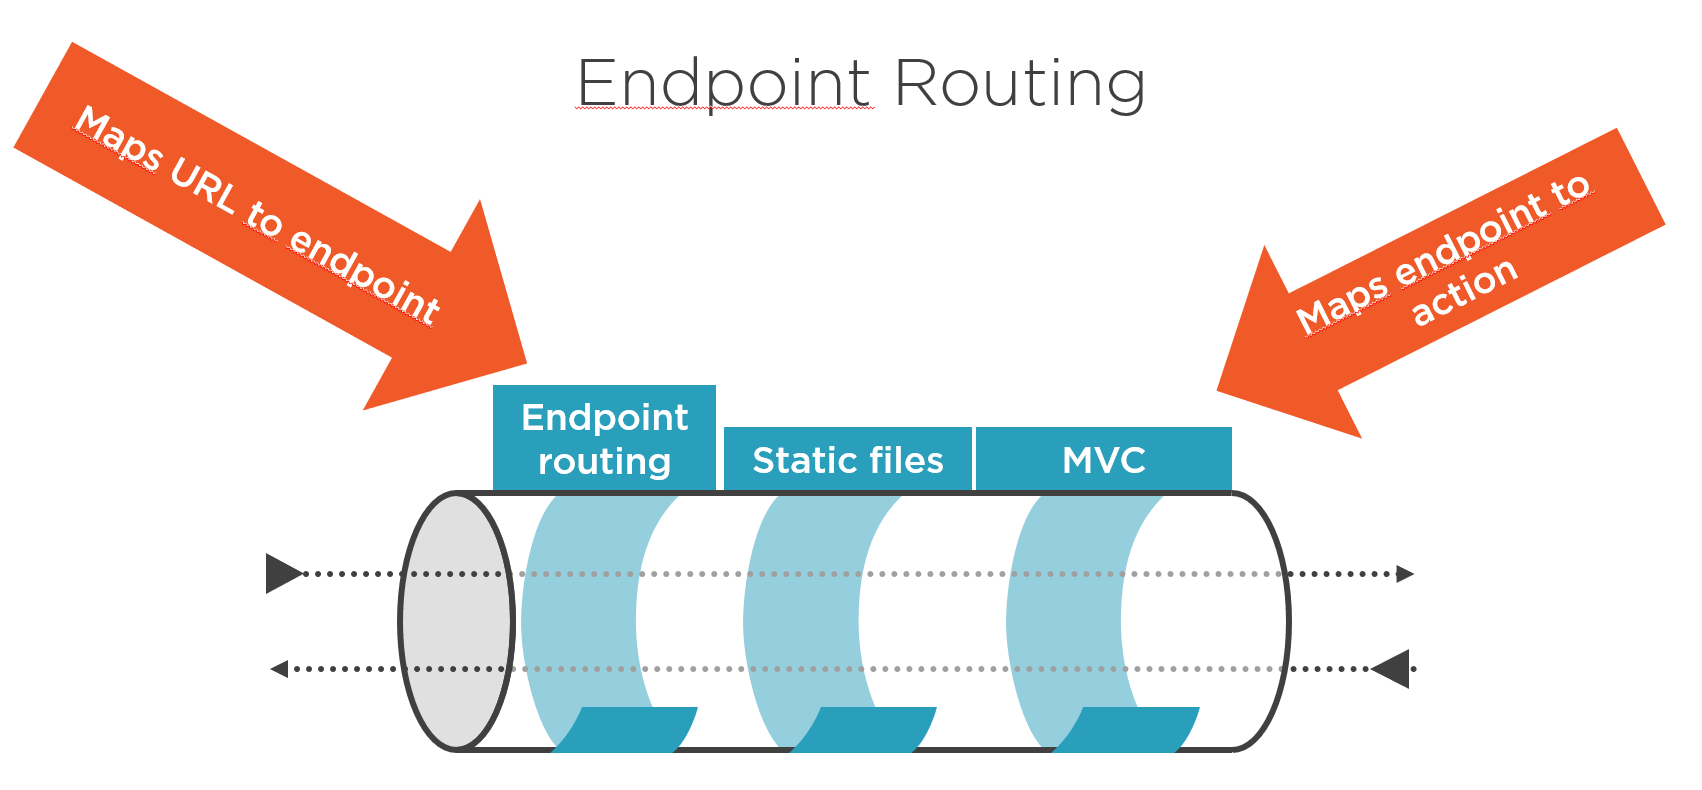 Endpoint Routing in ASP.NET Core 2.2 Explained